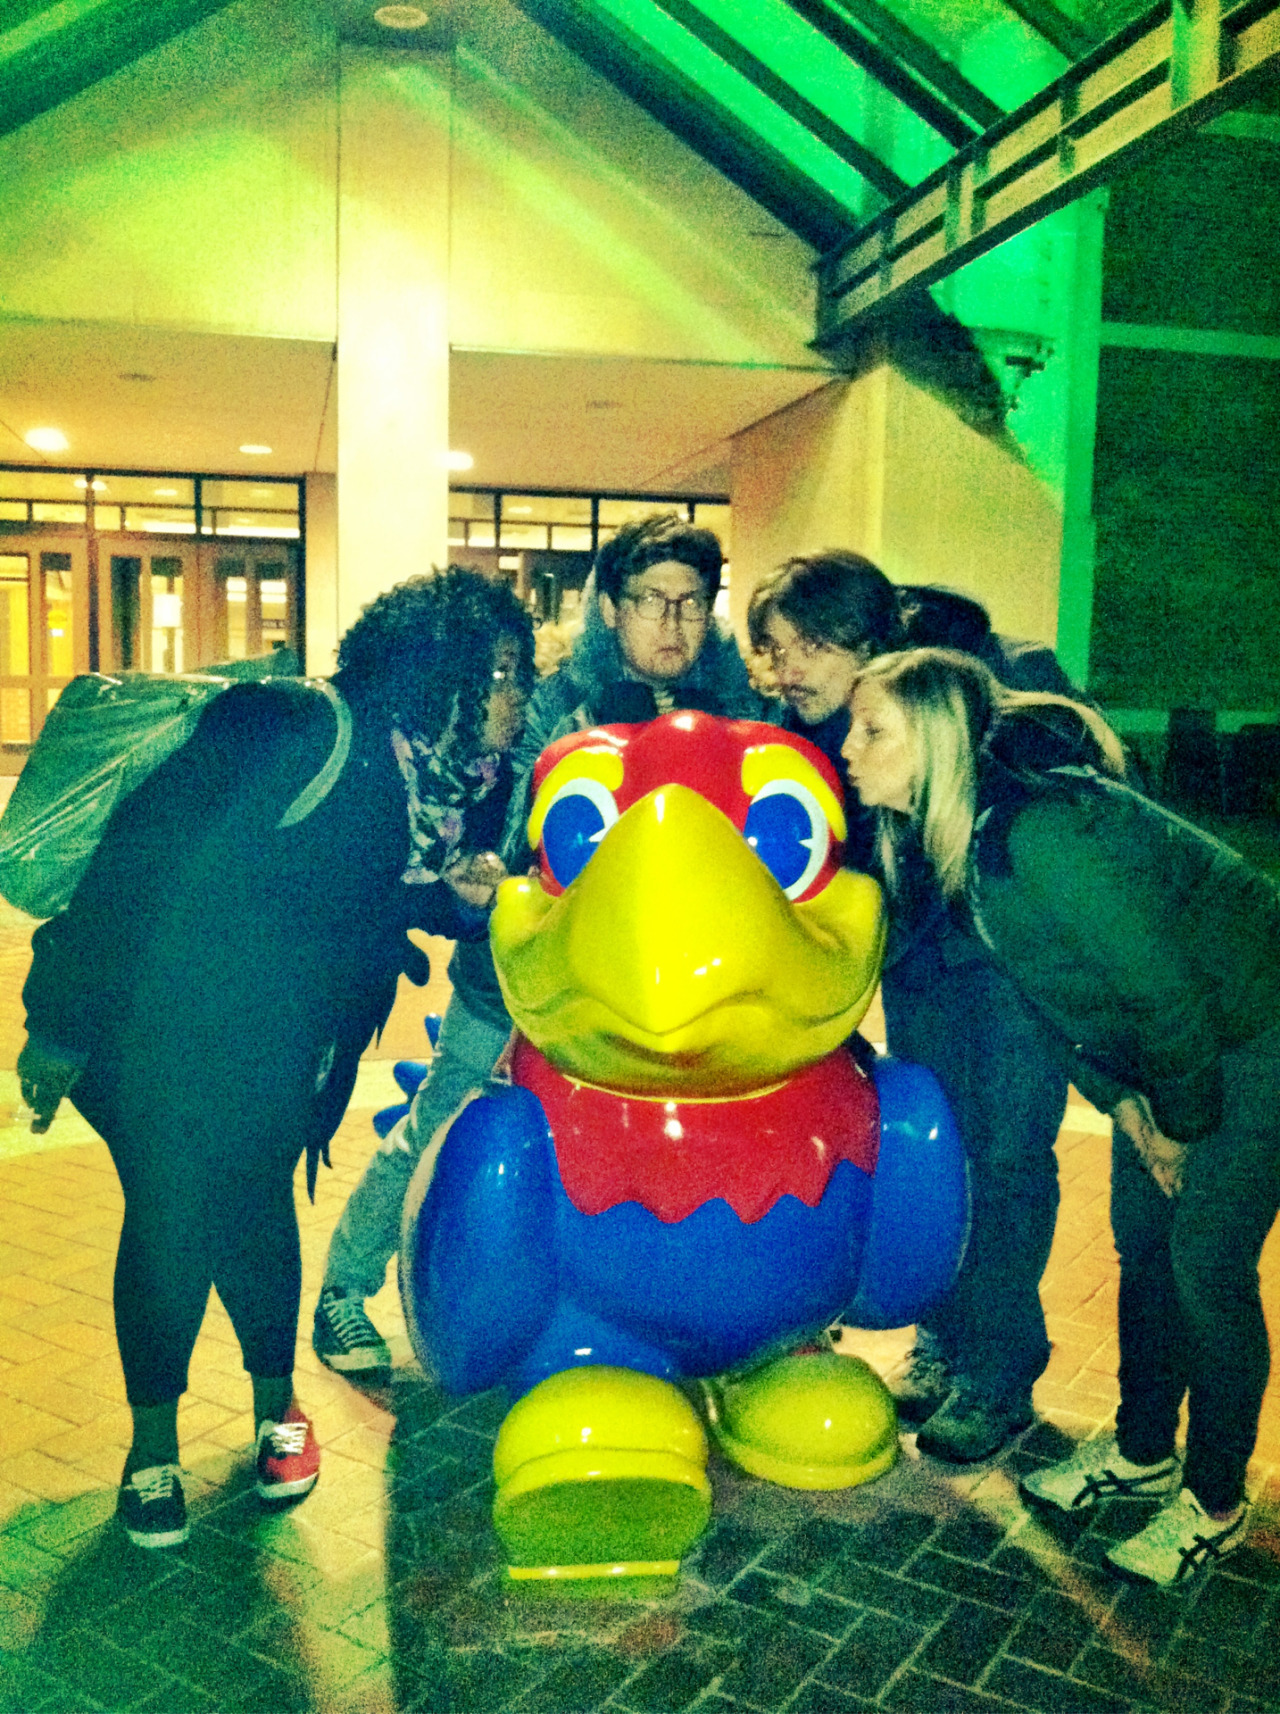 Thanks KU! You're awesome!